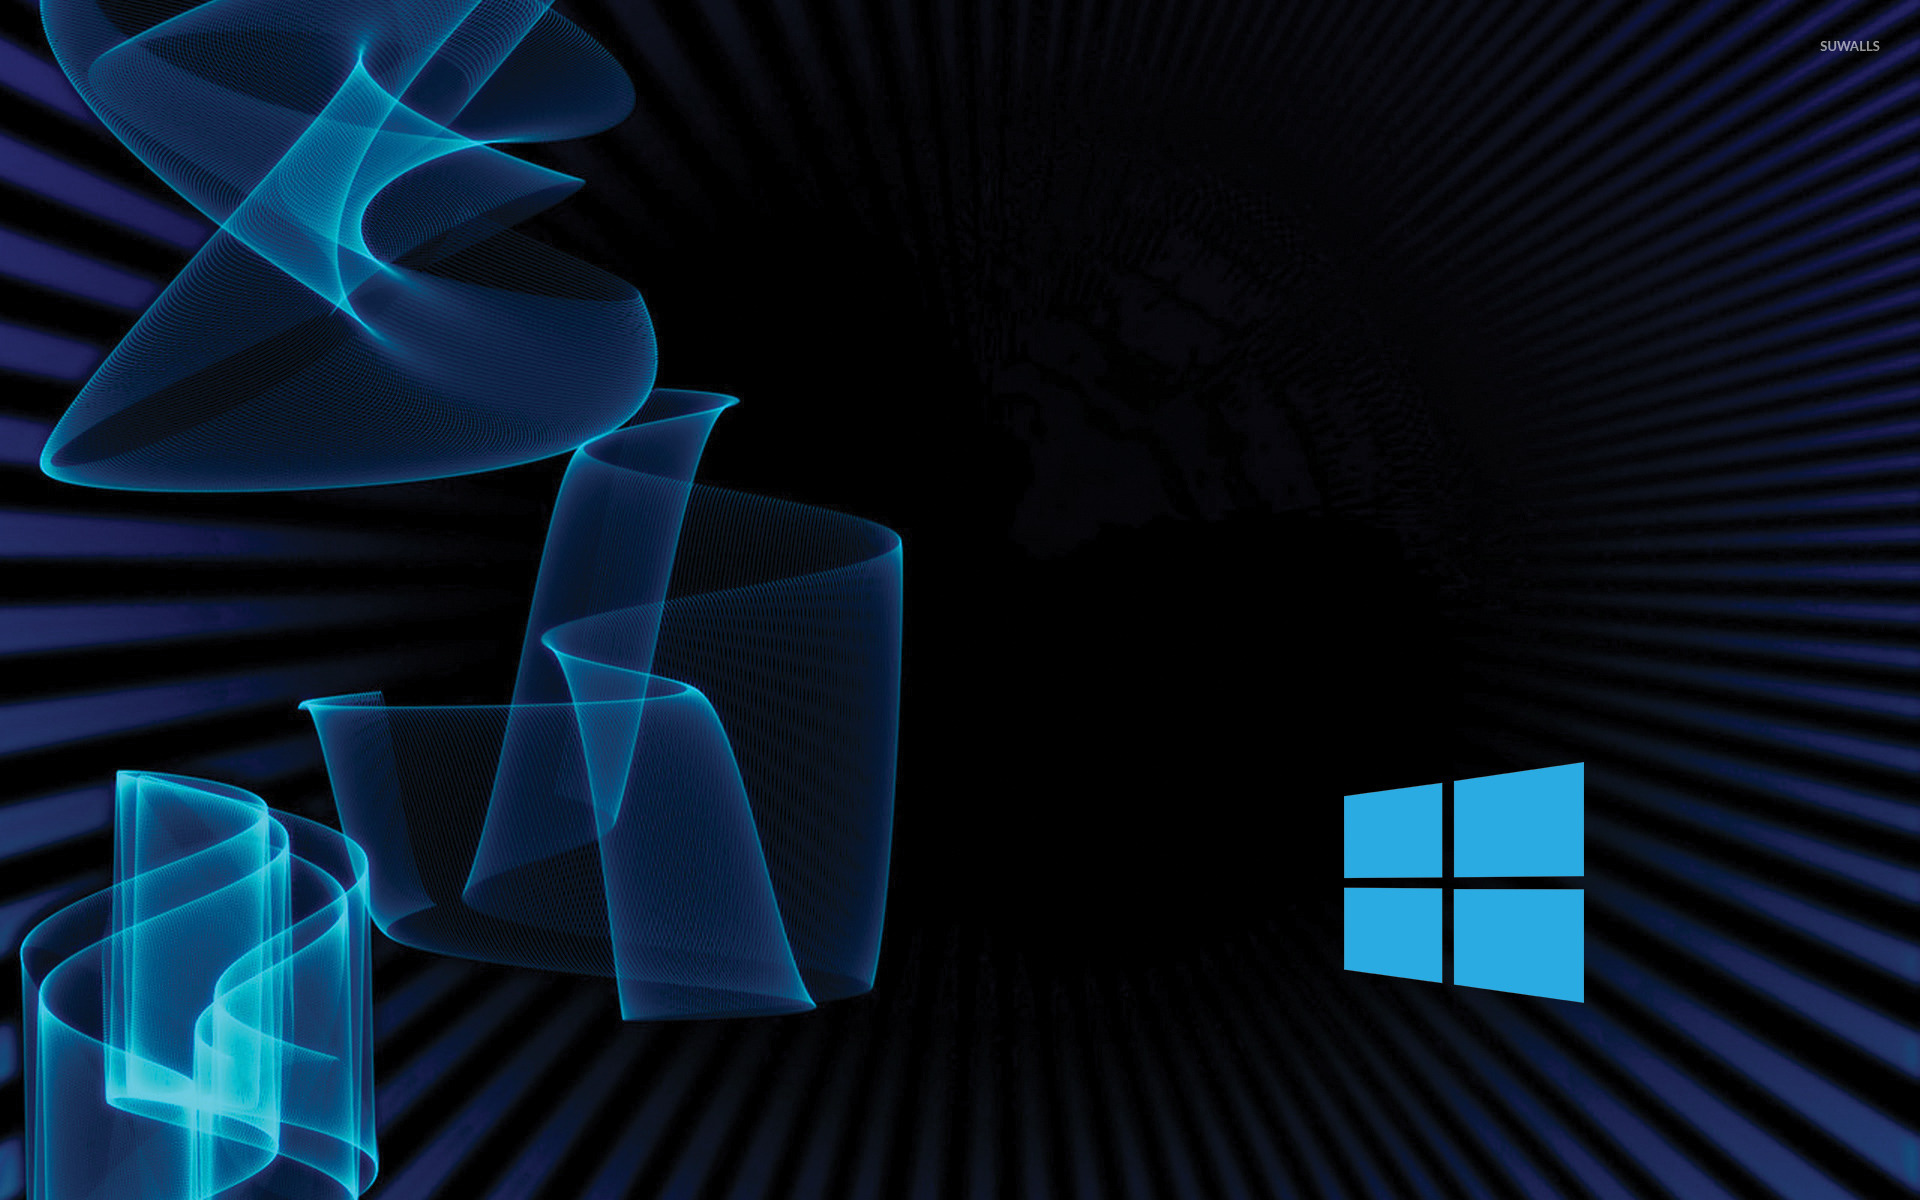 Windows 10 simple blue logo on blue rays and waves wallpaper 1680x1050 1680x1050